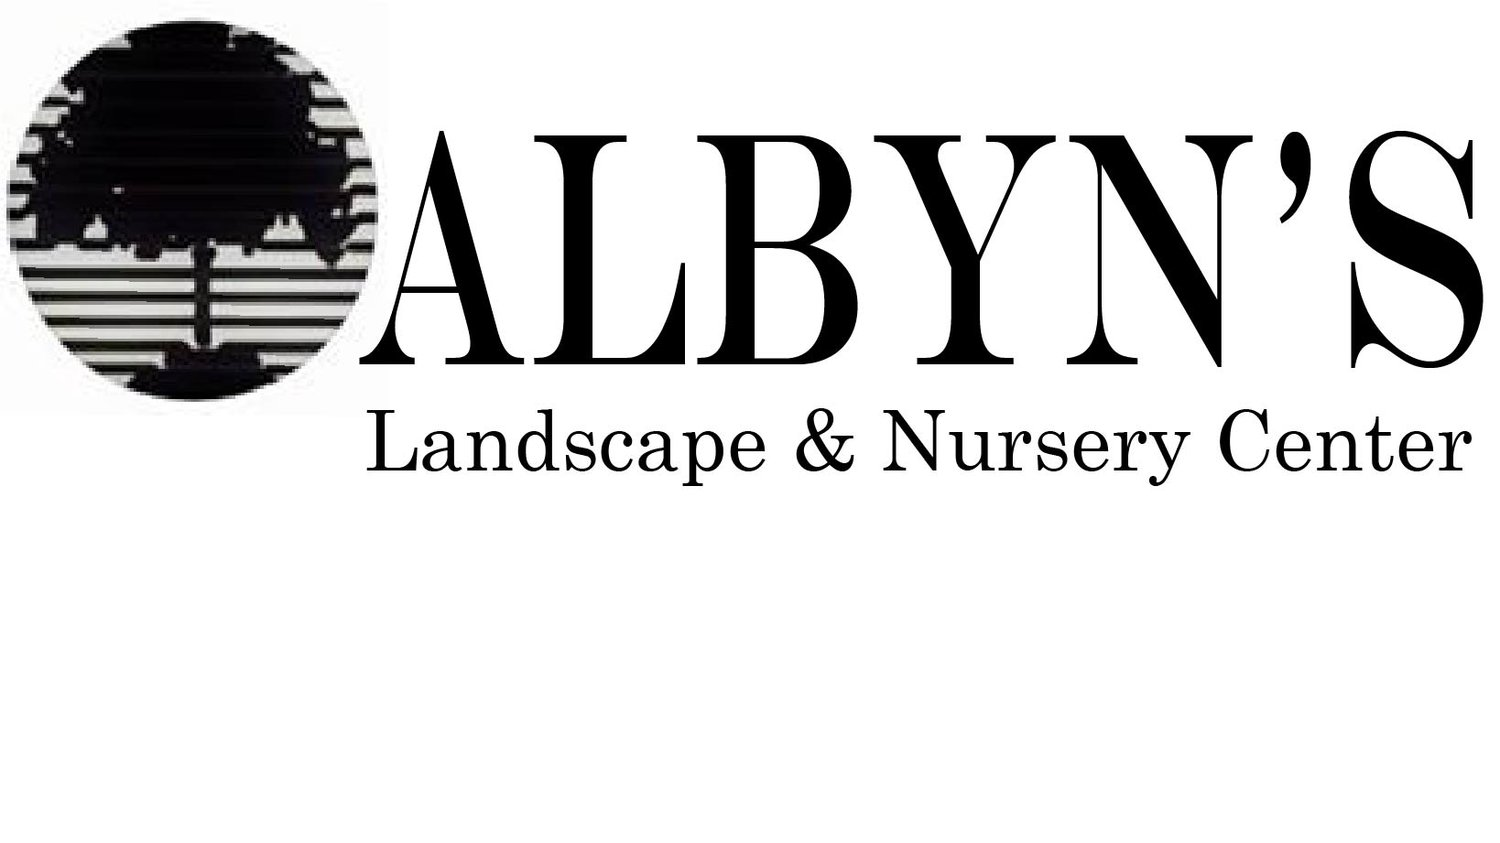 ALBYN'S LANDSCAPE & NURSERY CENTER